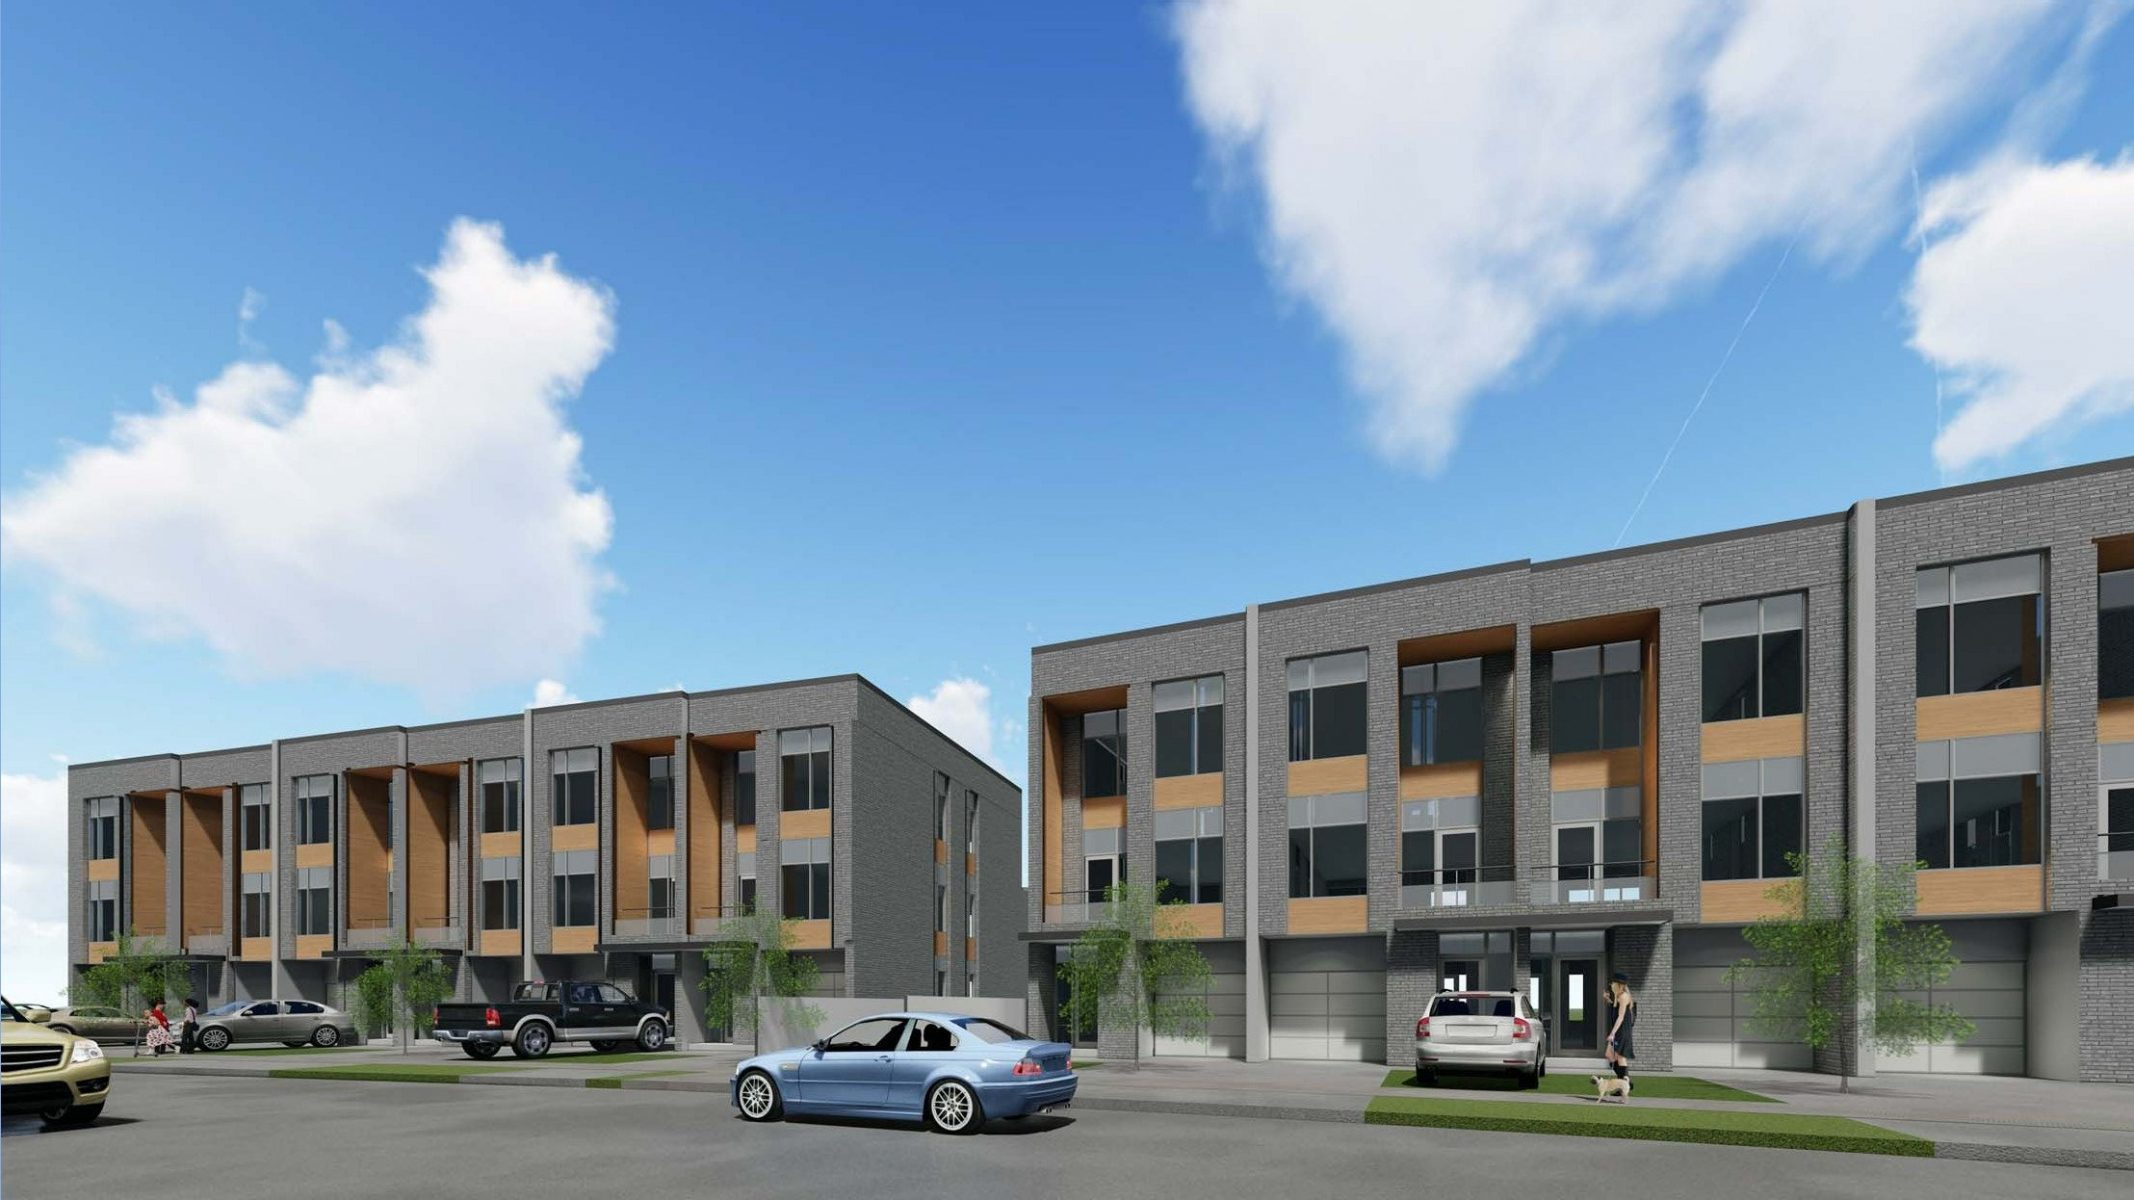 Korsiak Urban Planning - Oakville Portfolio - Dundas Street, Mixed Use, Greenfield, Mid-Rise Development - Oakville, Ontario